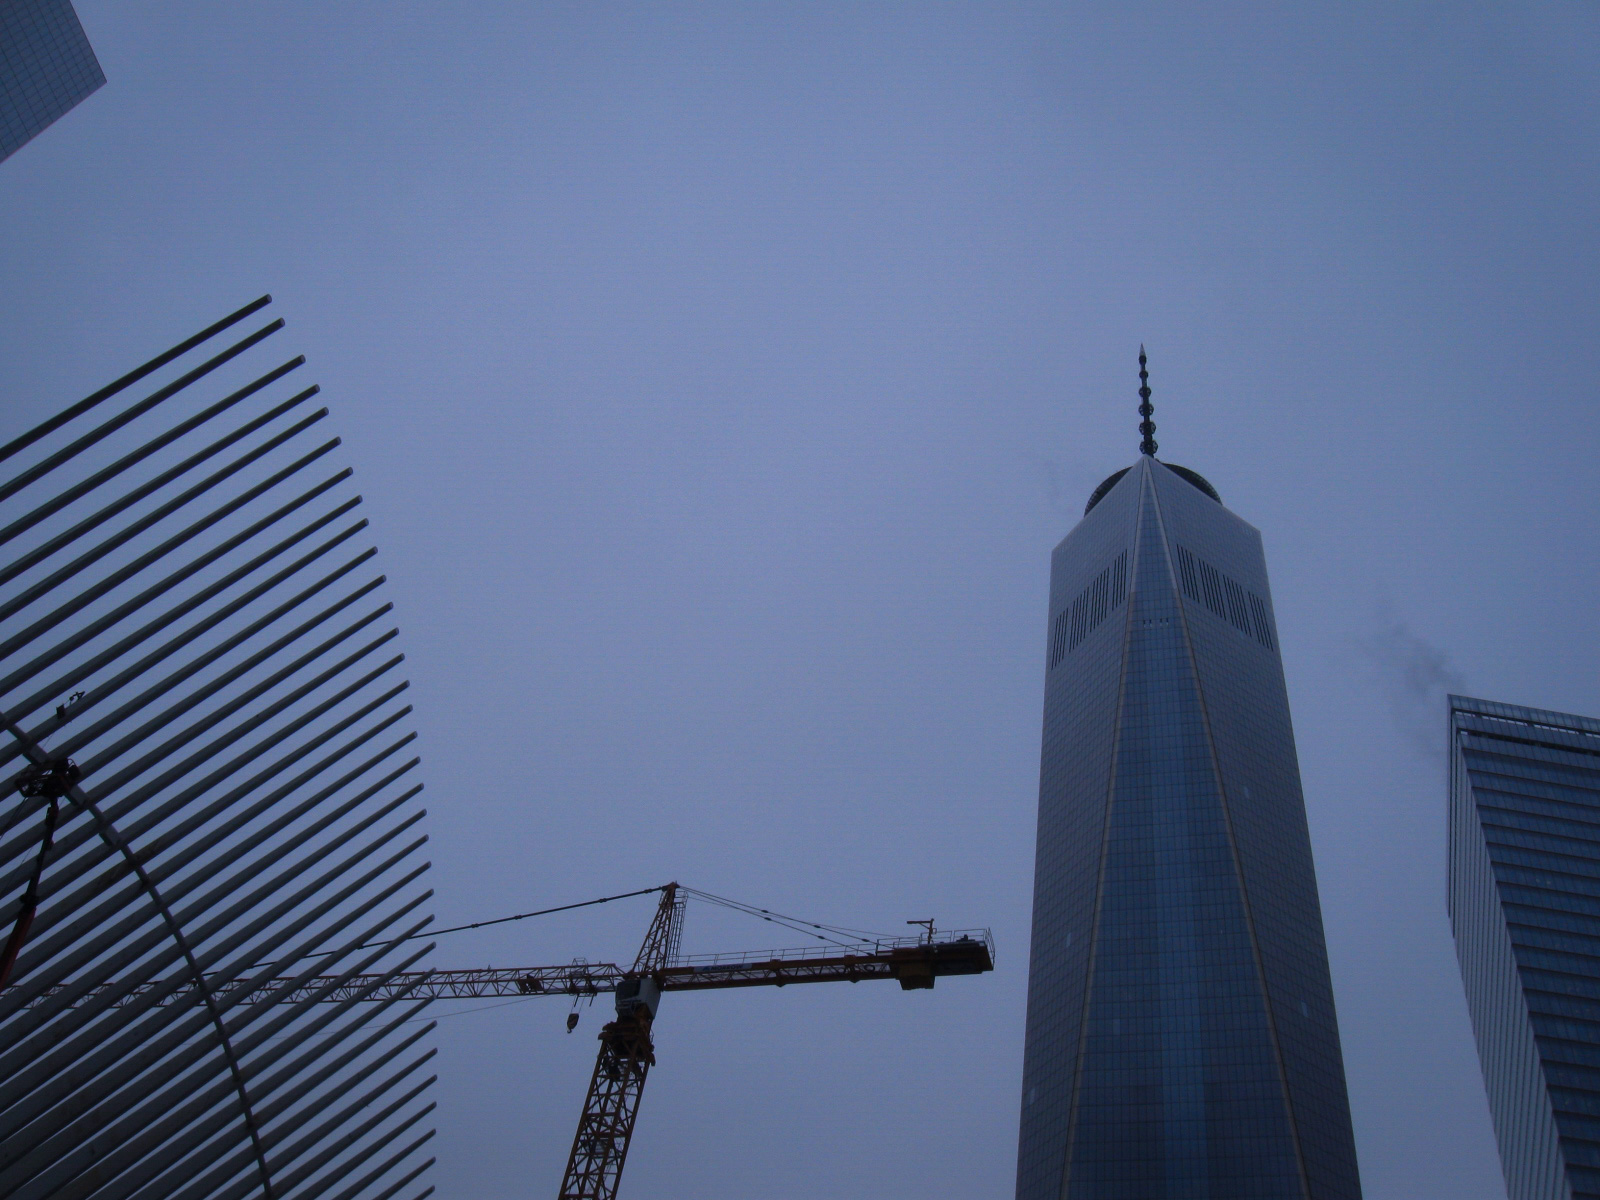 looking up at the top of one world trade center, with a construction crane to the left